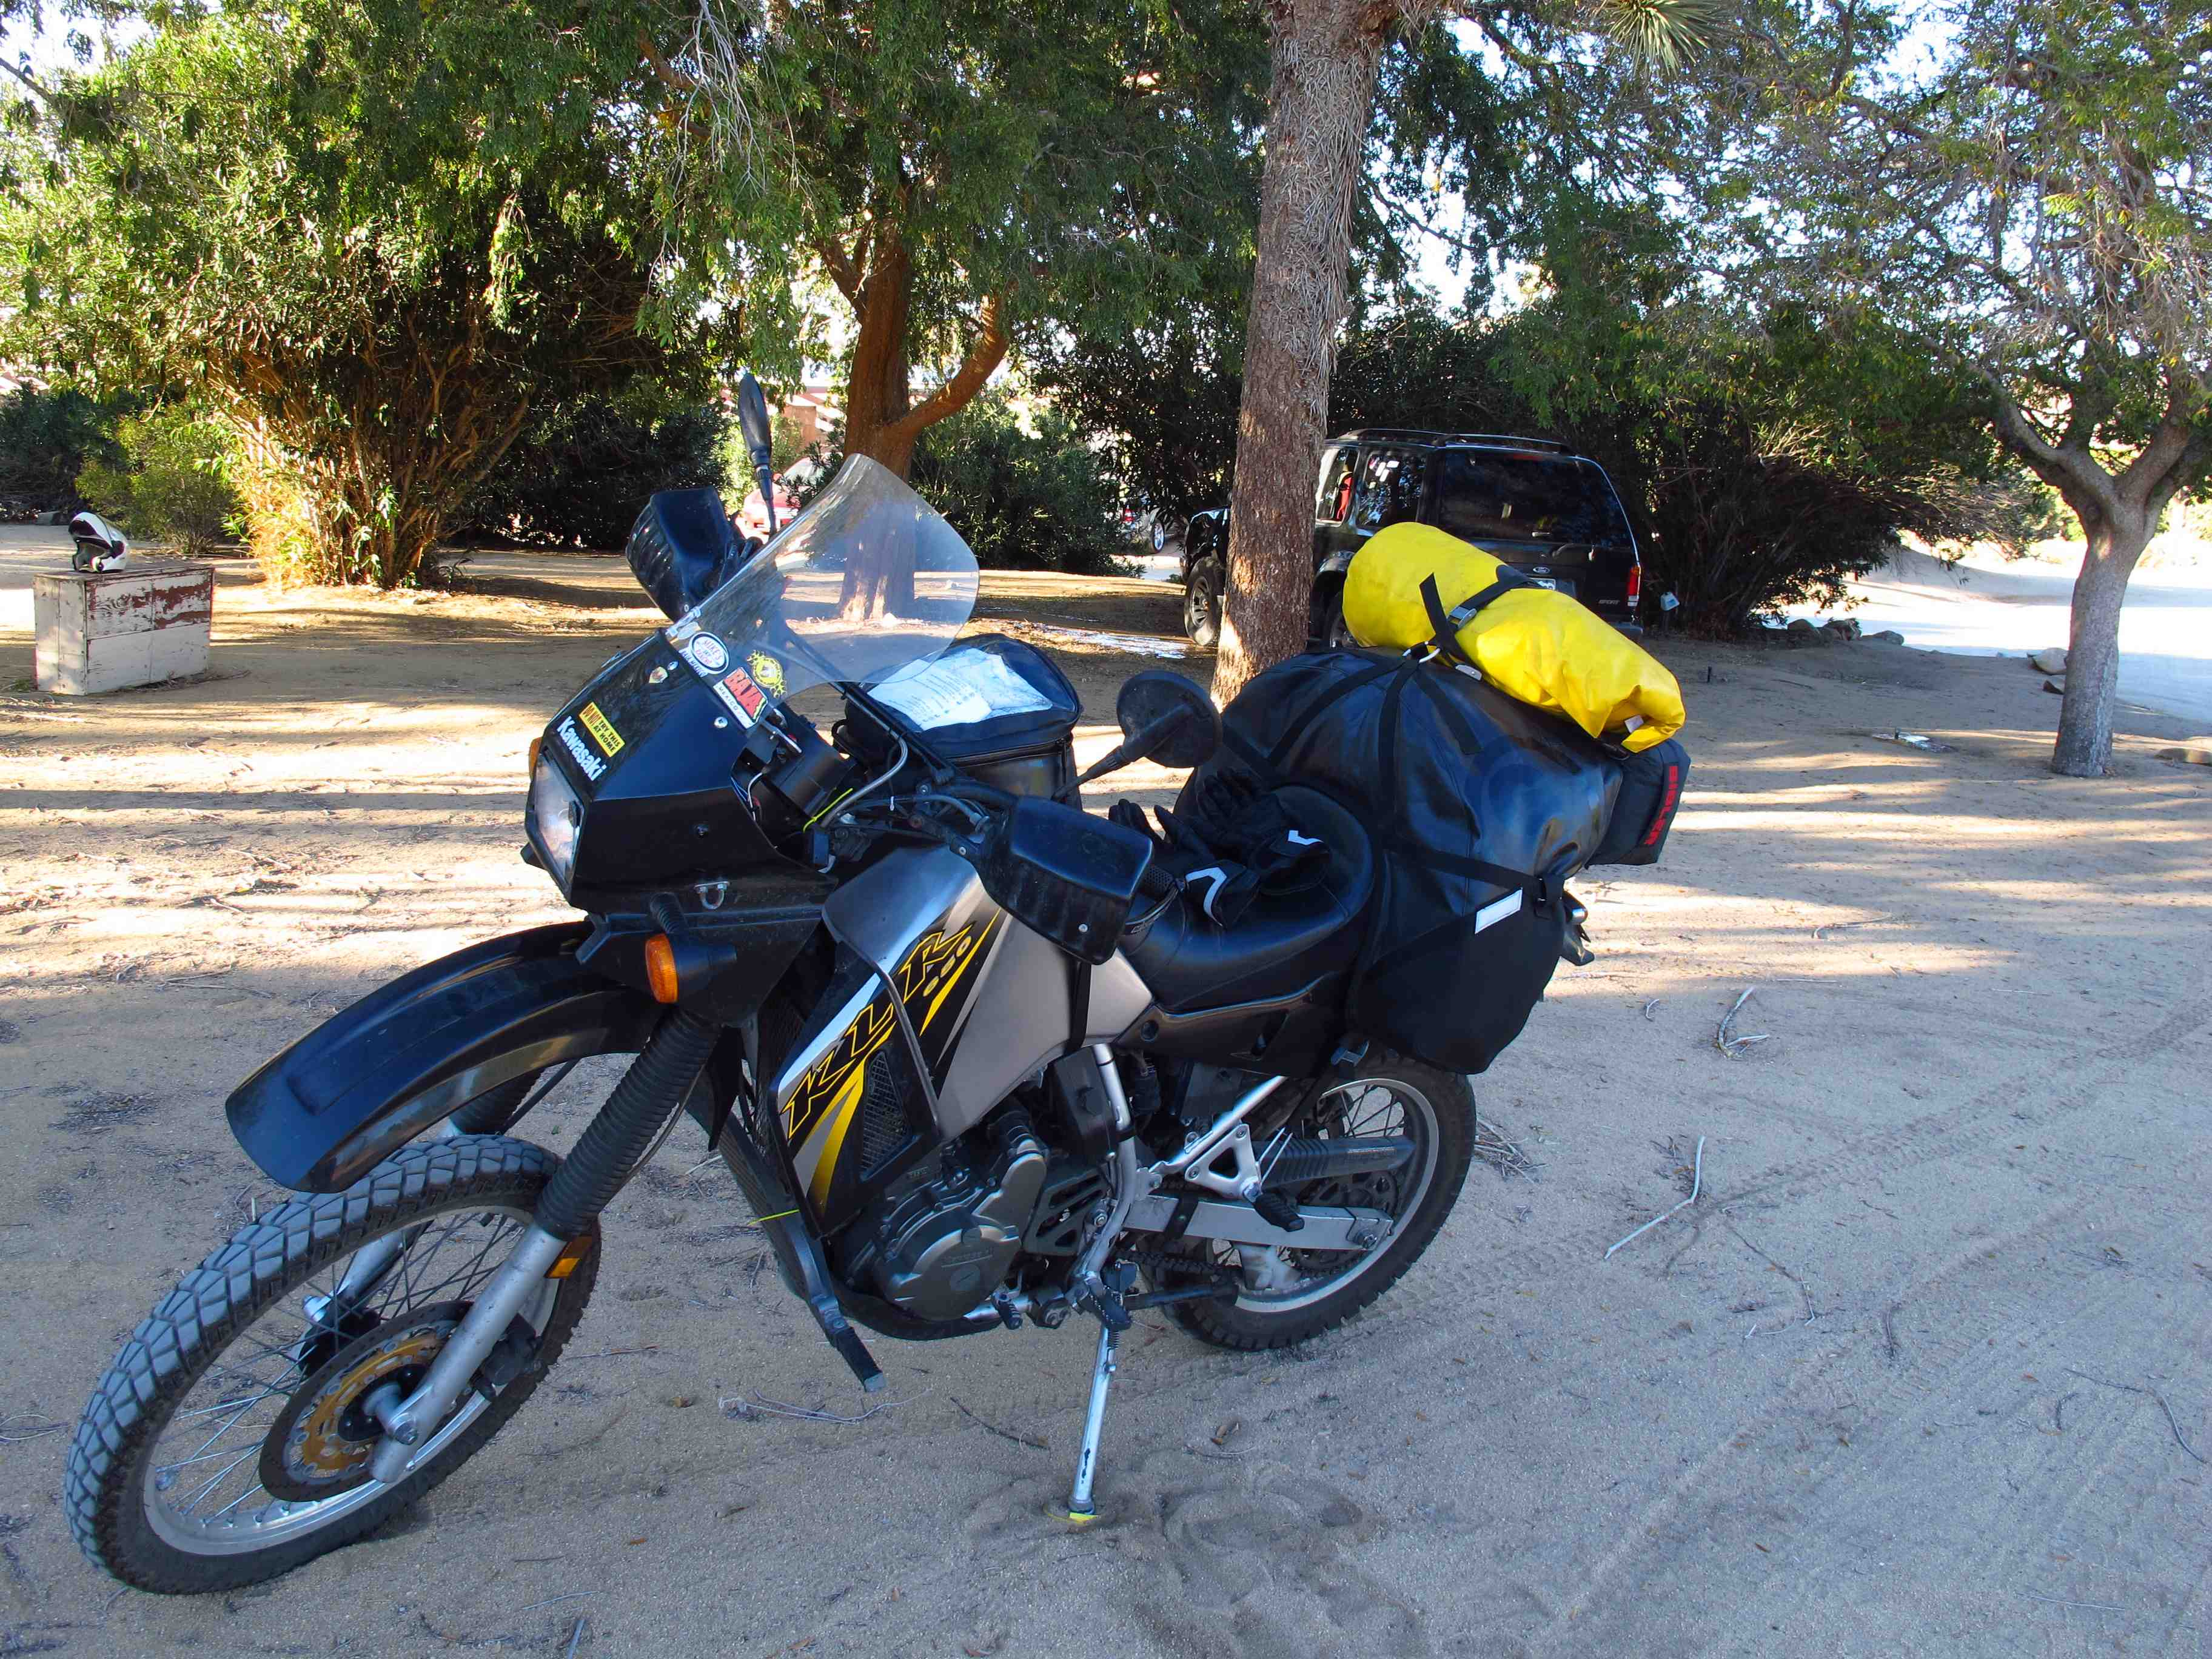 16 Riders on How to Get Started with Motorcycle Camping